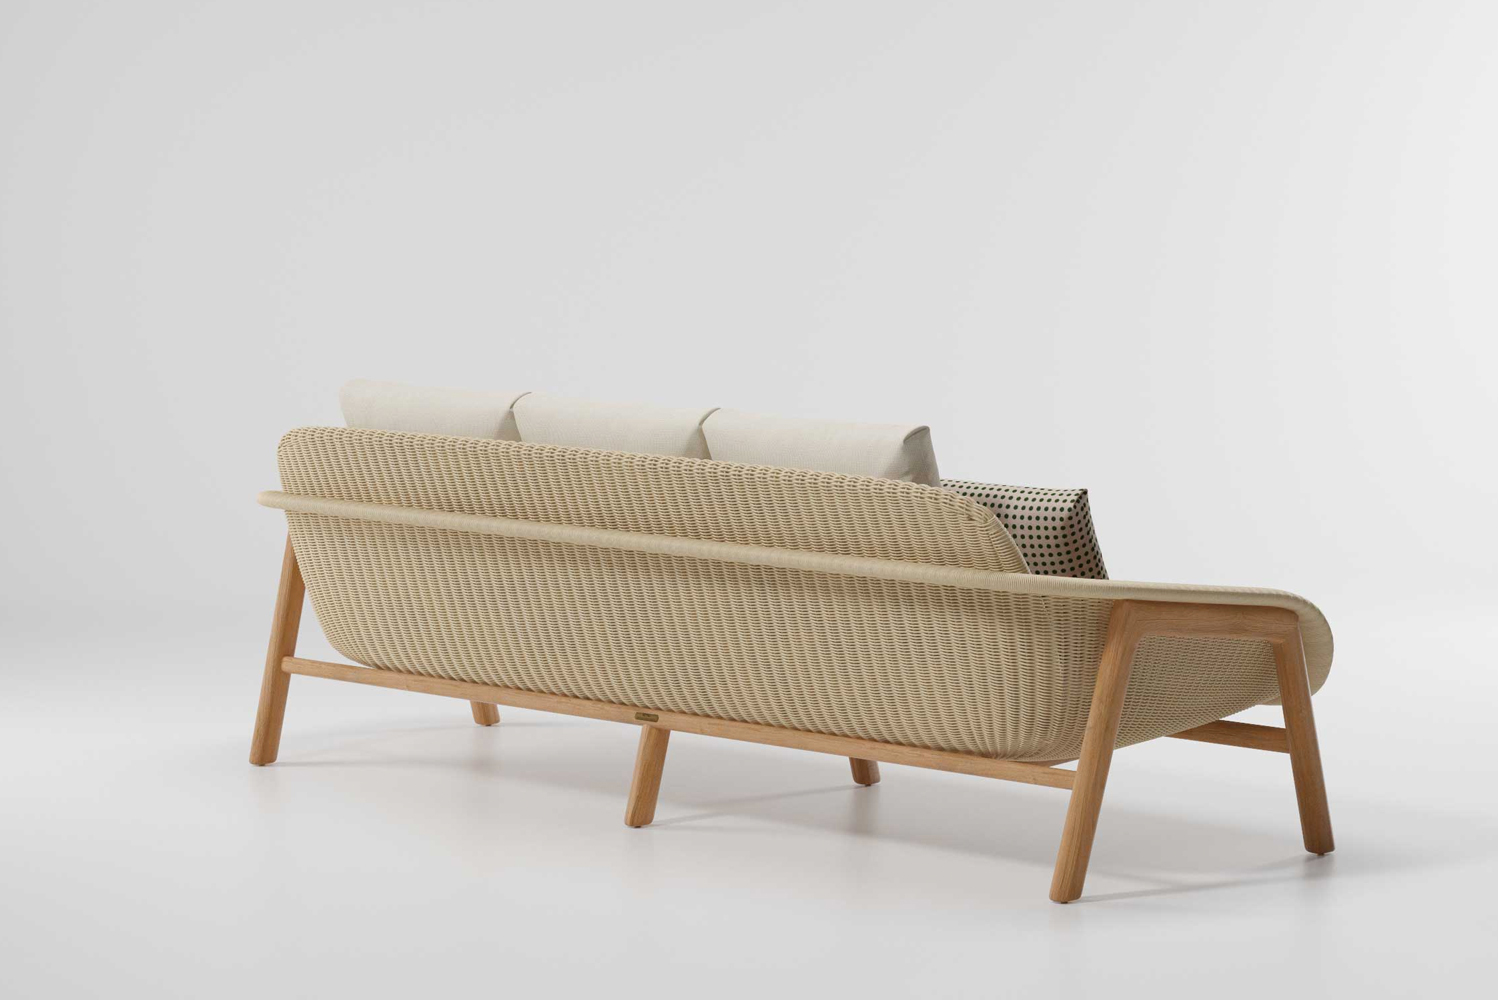 The collection includes a sofa in two sizes, a chair, a center table and a side table.